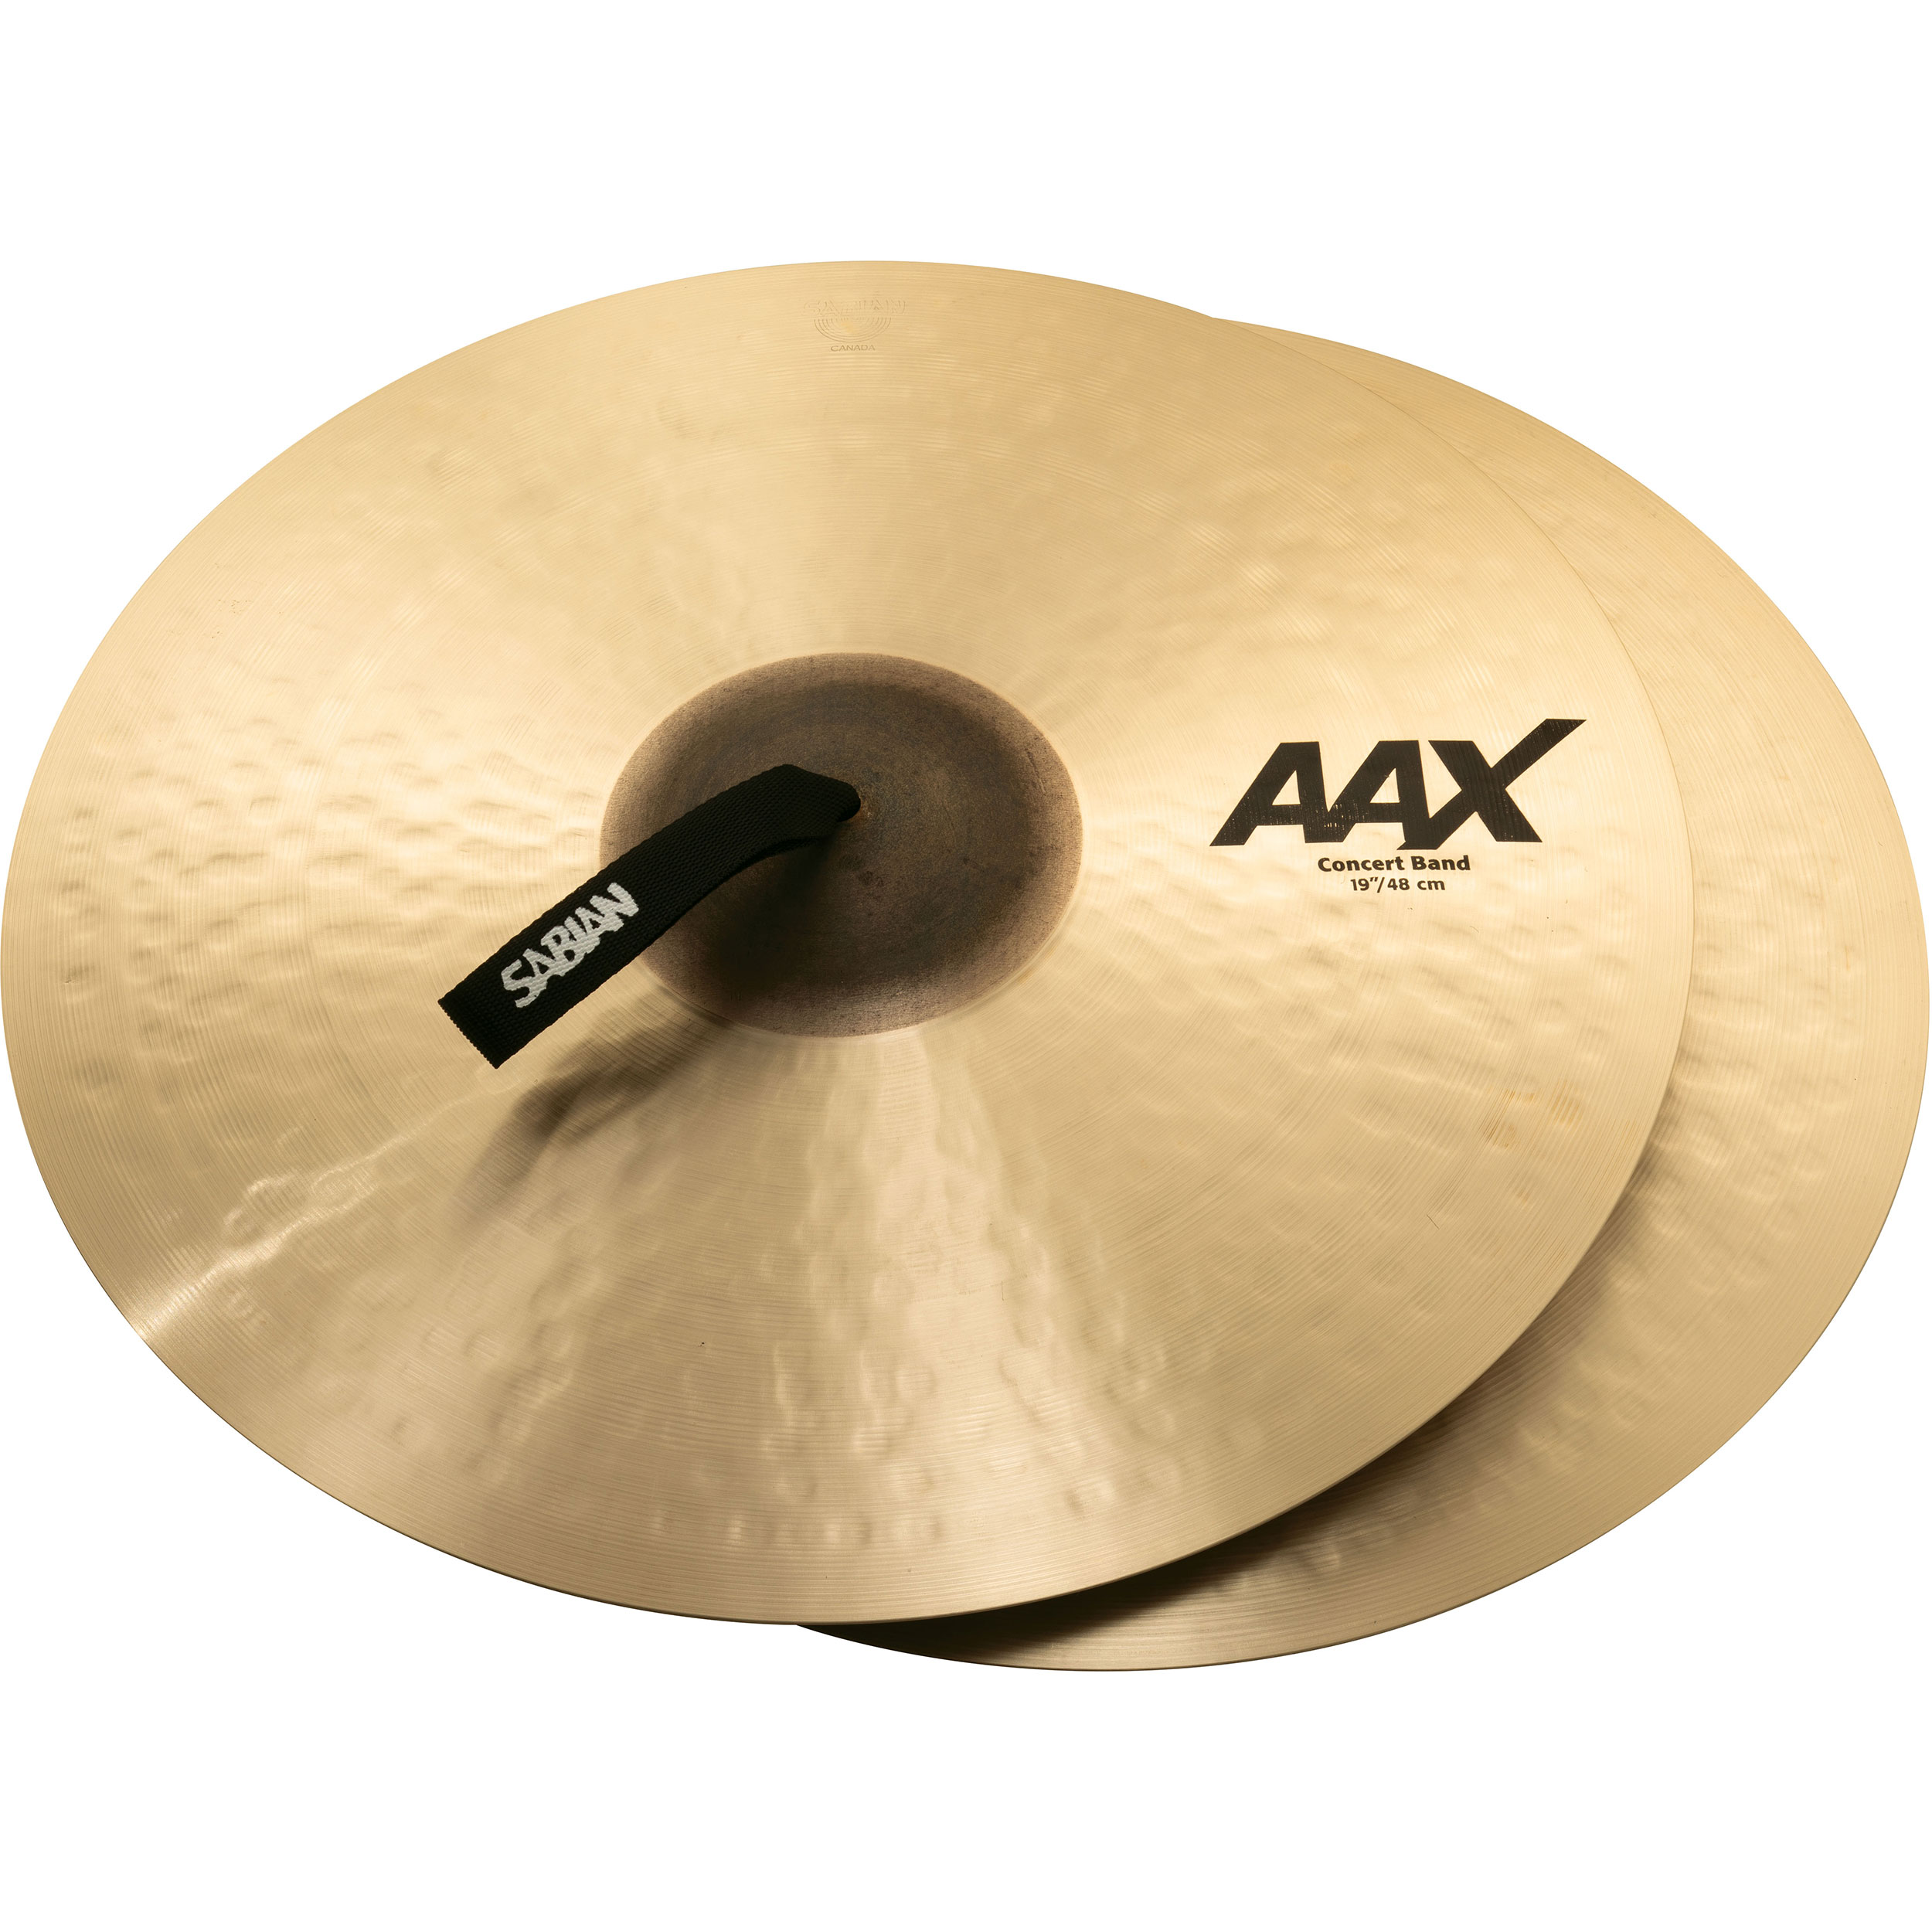 "Sabian 19"" AAX Concert Band Crash Cymbal Pair"